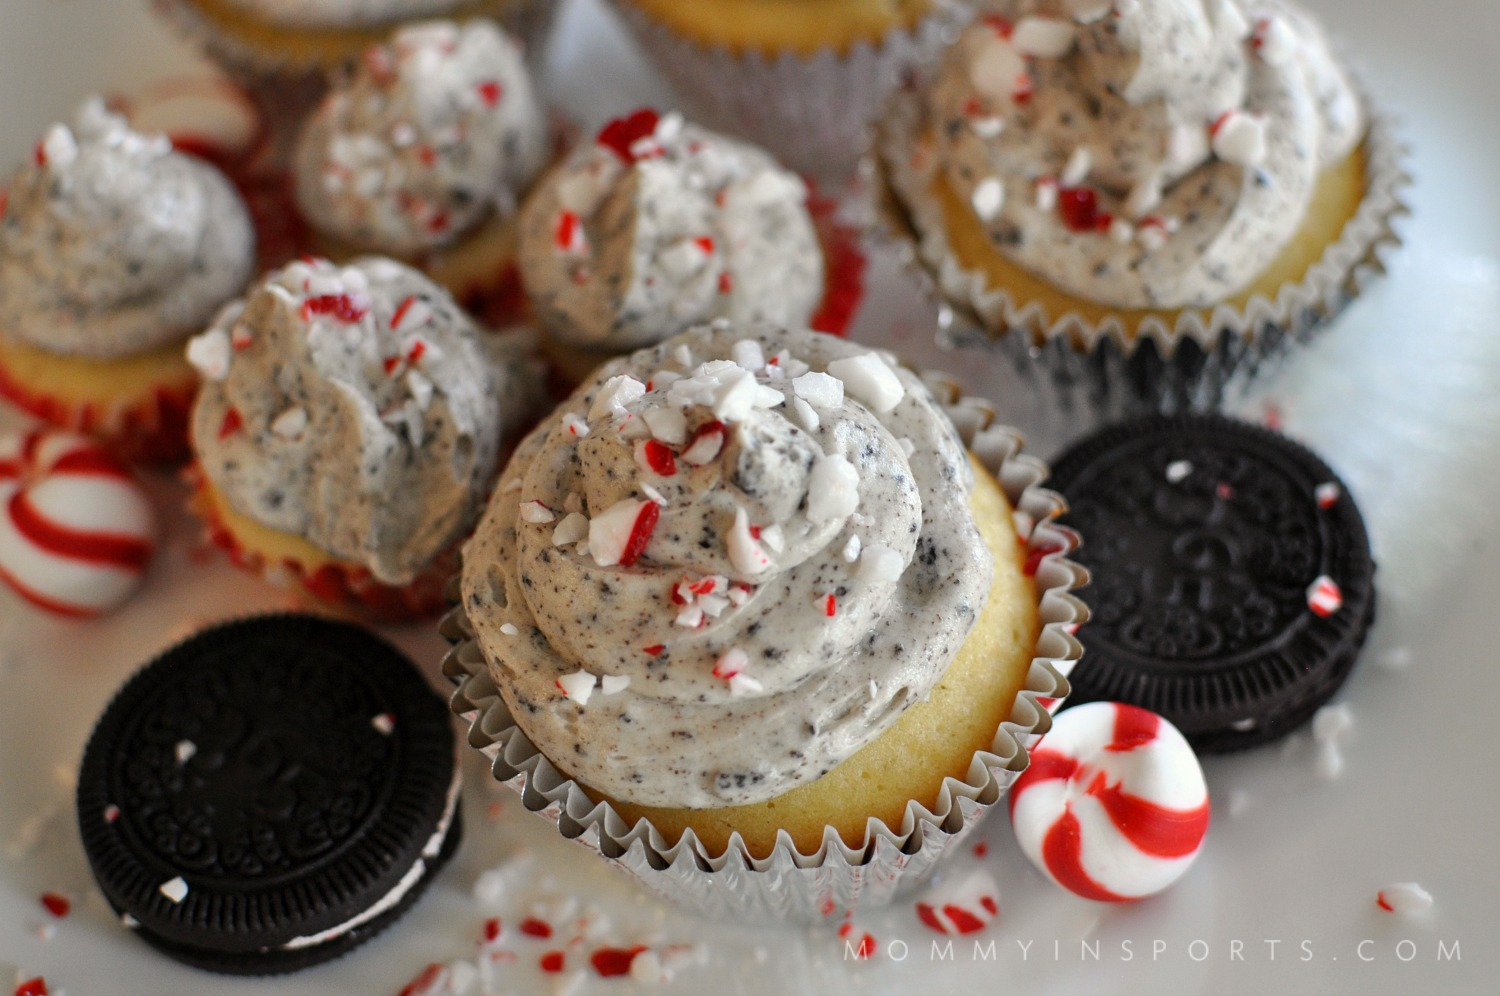 Looking for the perfect vanilla peppermint cupcakes recipe? Try these with some homemade peppermint Oreo frosting! Will spice up any holiday party!